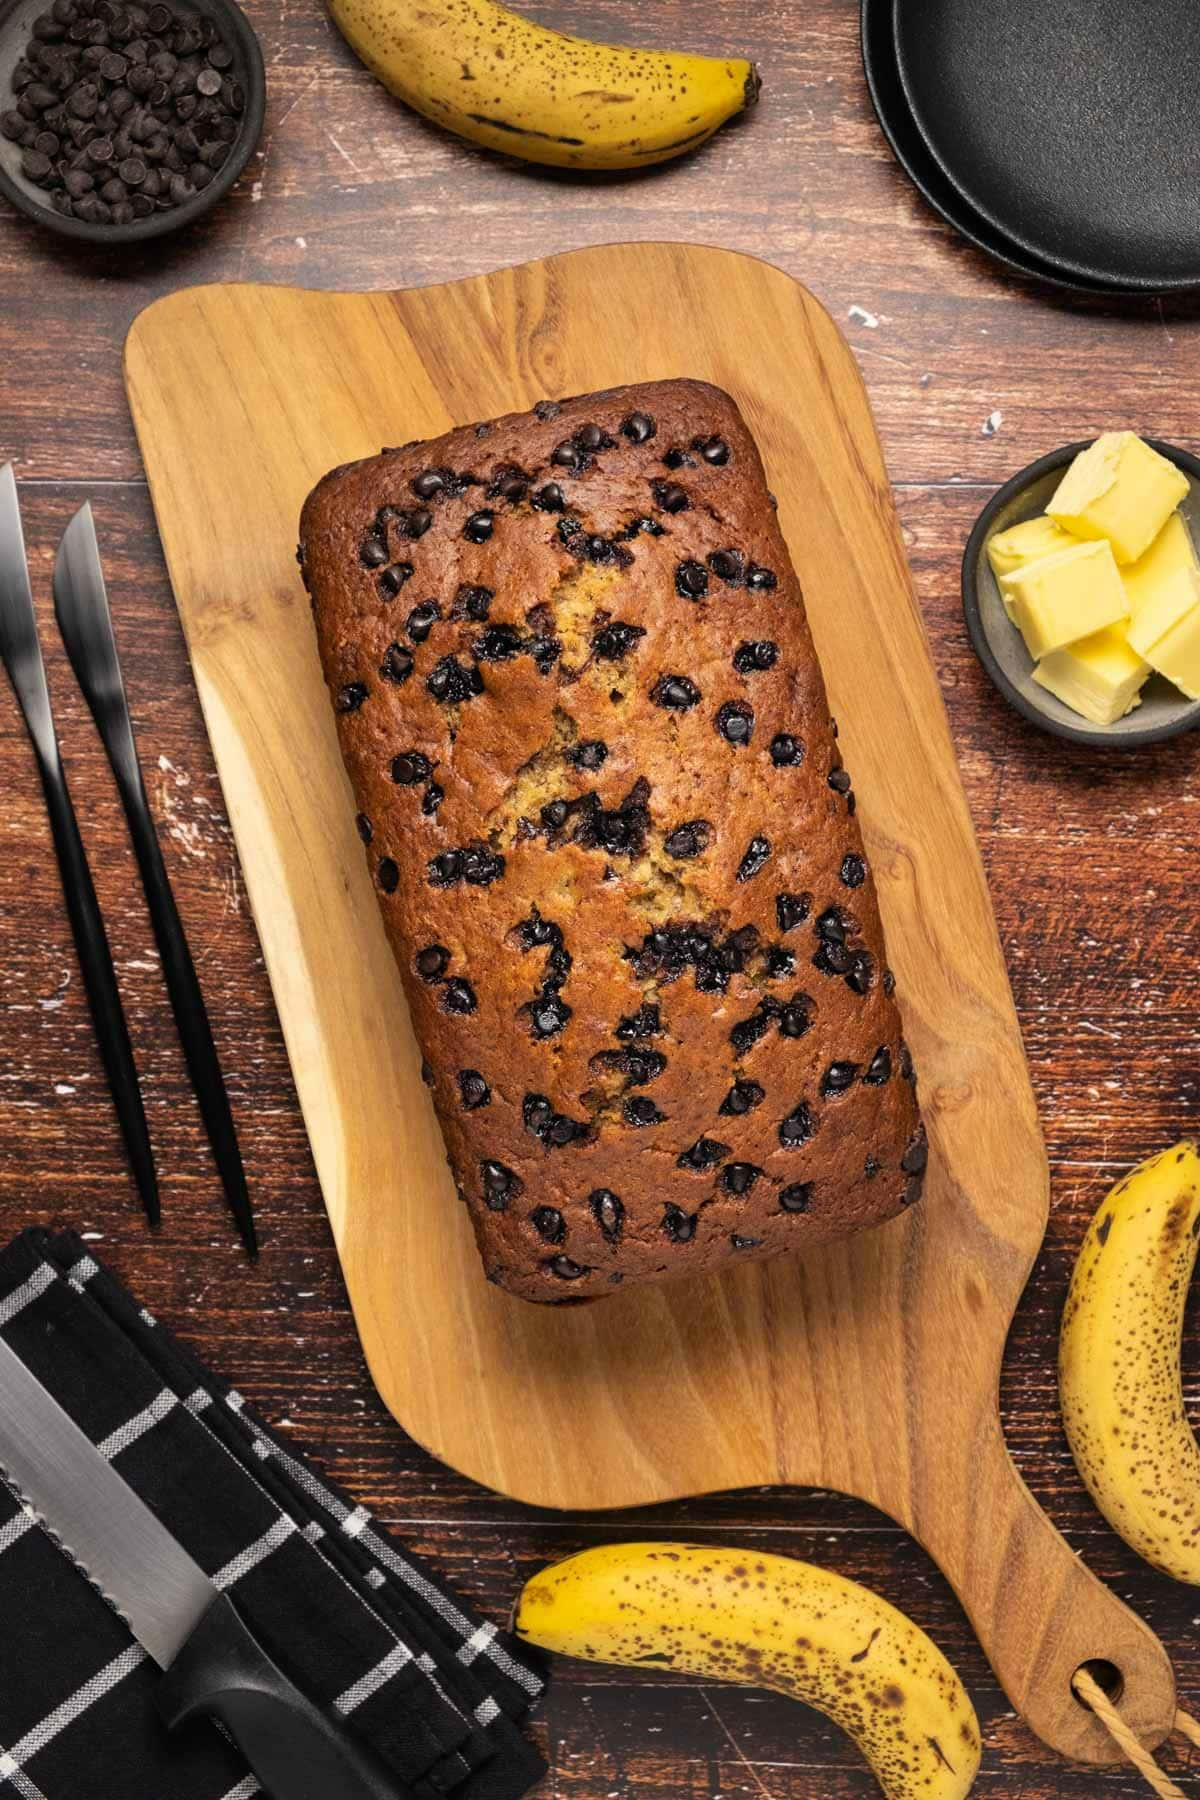 Loaf of chocolate chip banana bread on a wooden board.